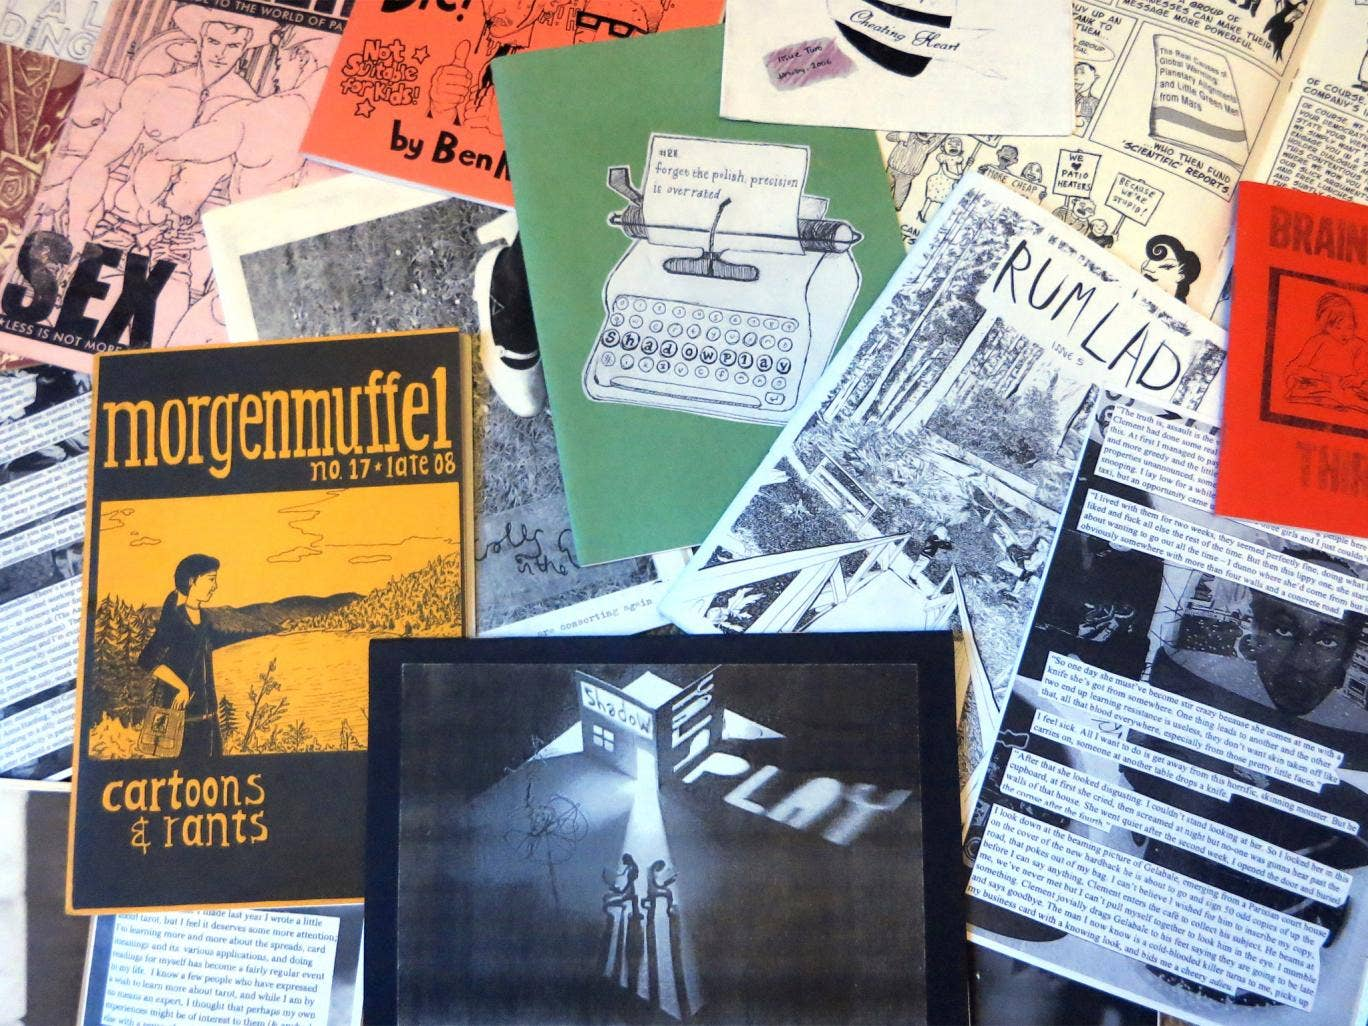 Cut and paste: a selection of the writer's fanzine collection